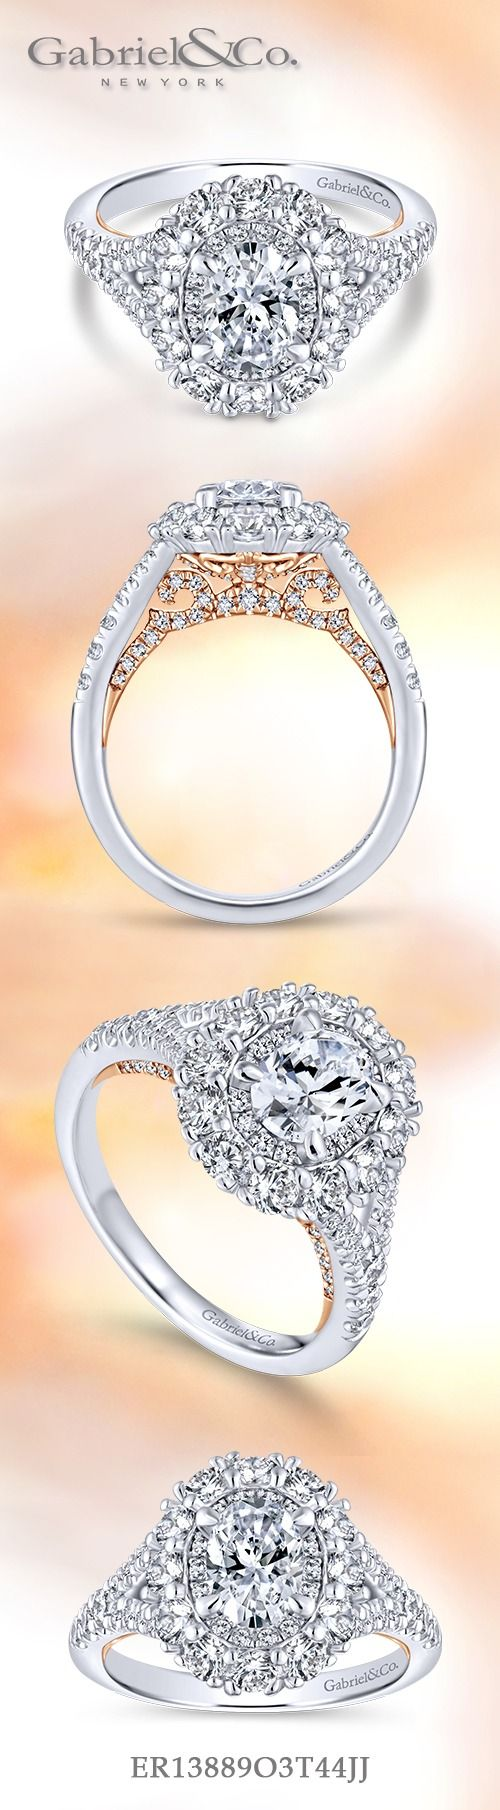 Gabriel & Co.-Voted #1 Most Preferred Fine Jewelry and Bridal Brand.  14k White/Rose Gold Oval Double Halo  Engagement Ring